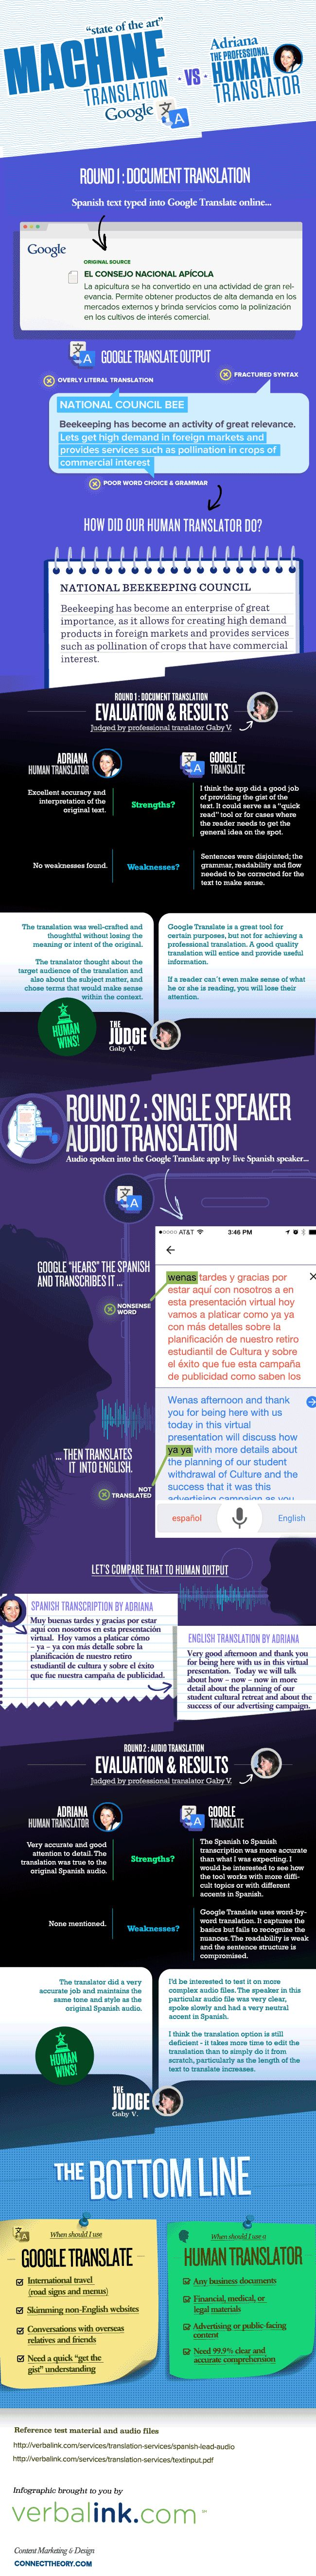 Pangeanic offers professional translation services in over 100 languages with a network of thousands of expert translators in many fields. http://www.pangeanic.com/professional-translation-services/